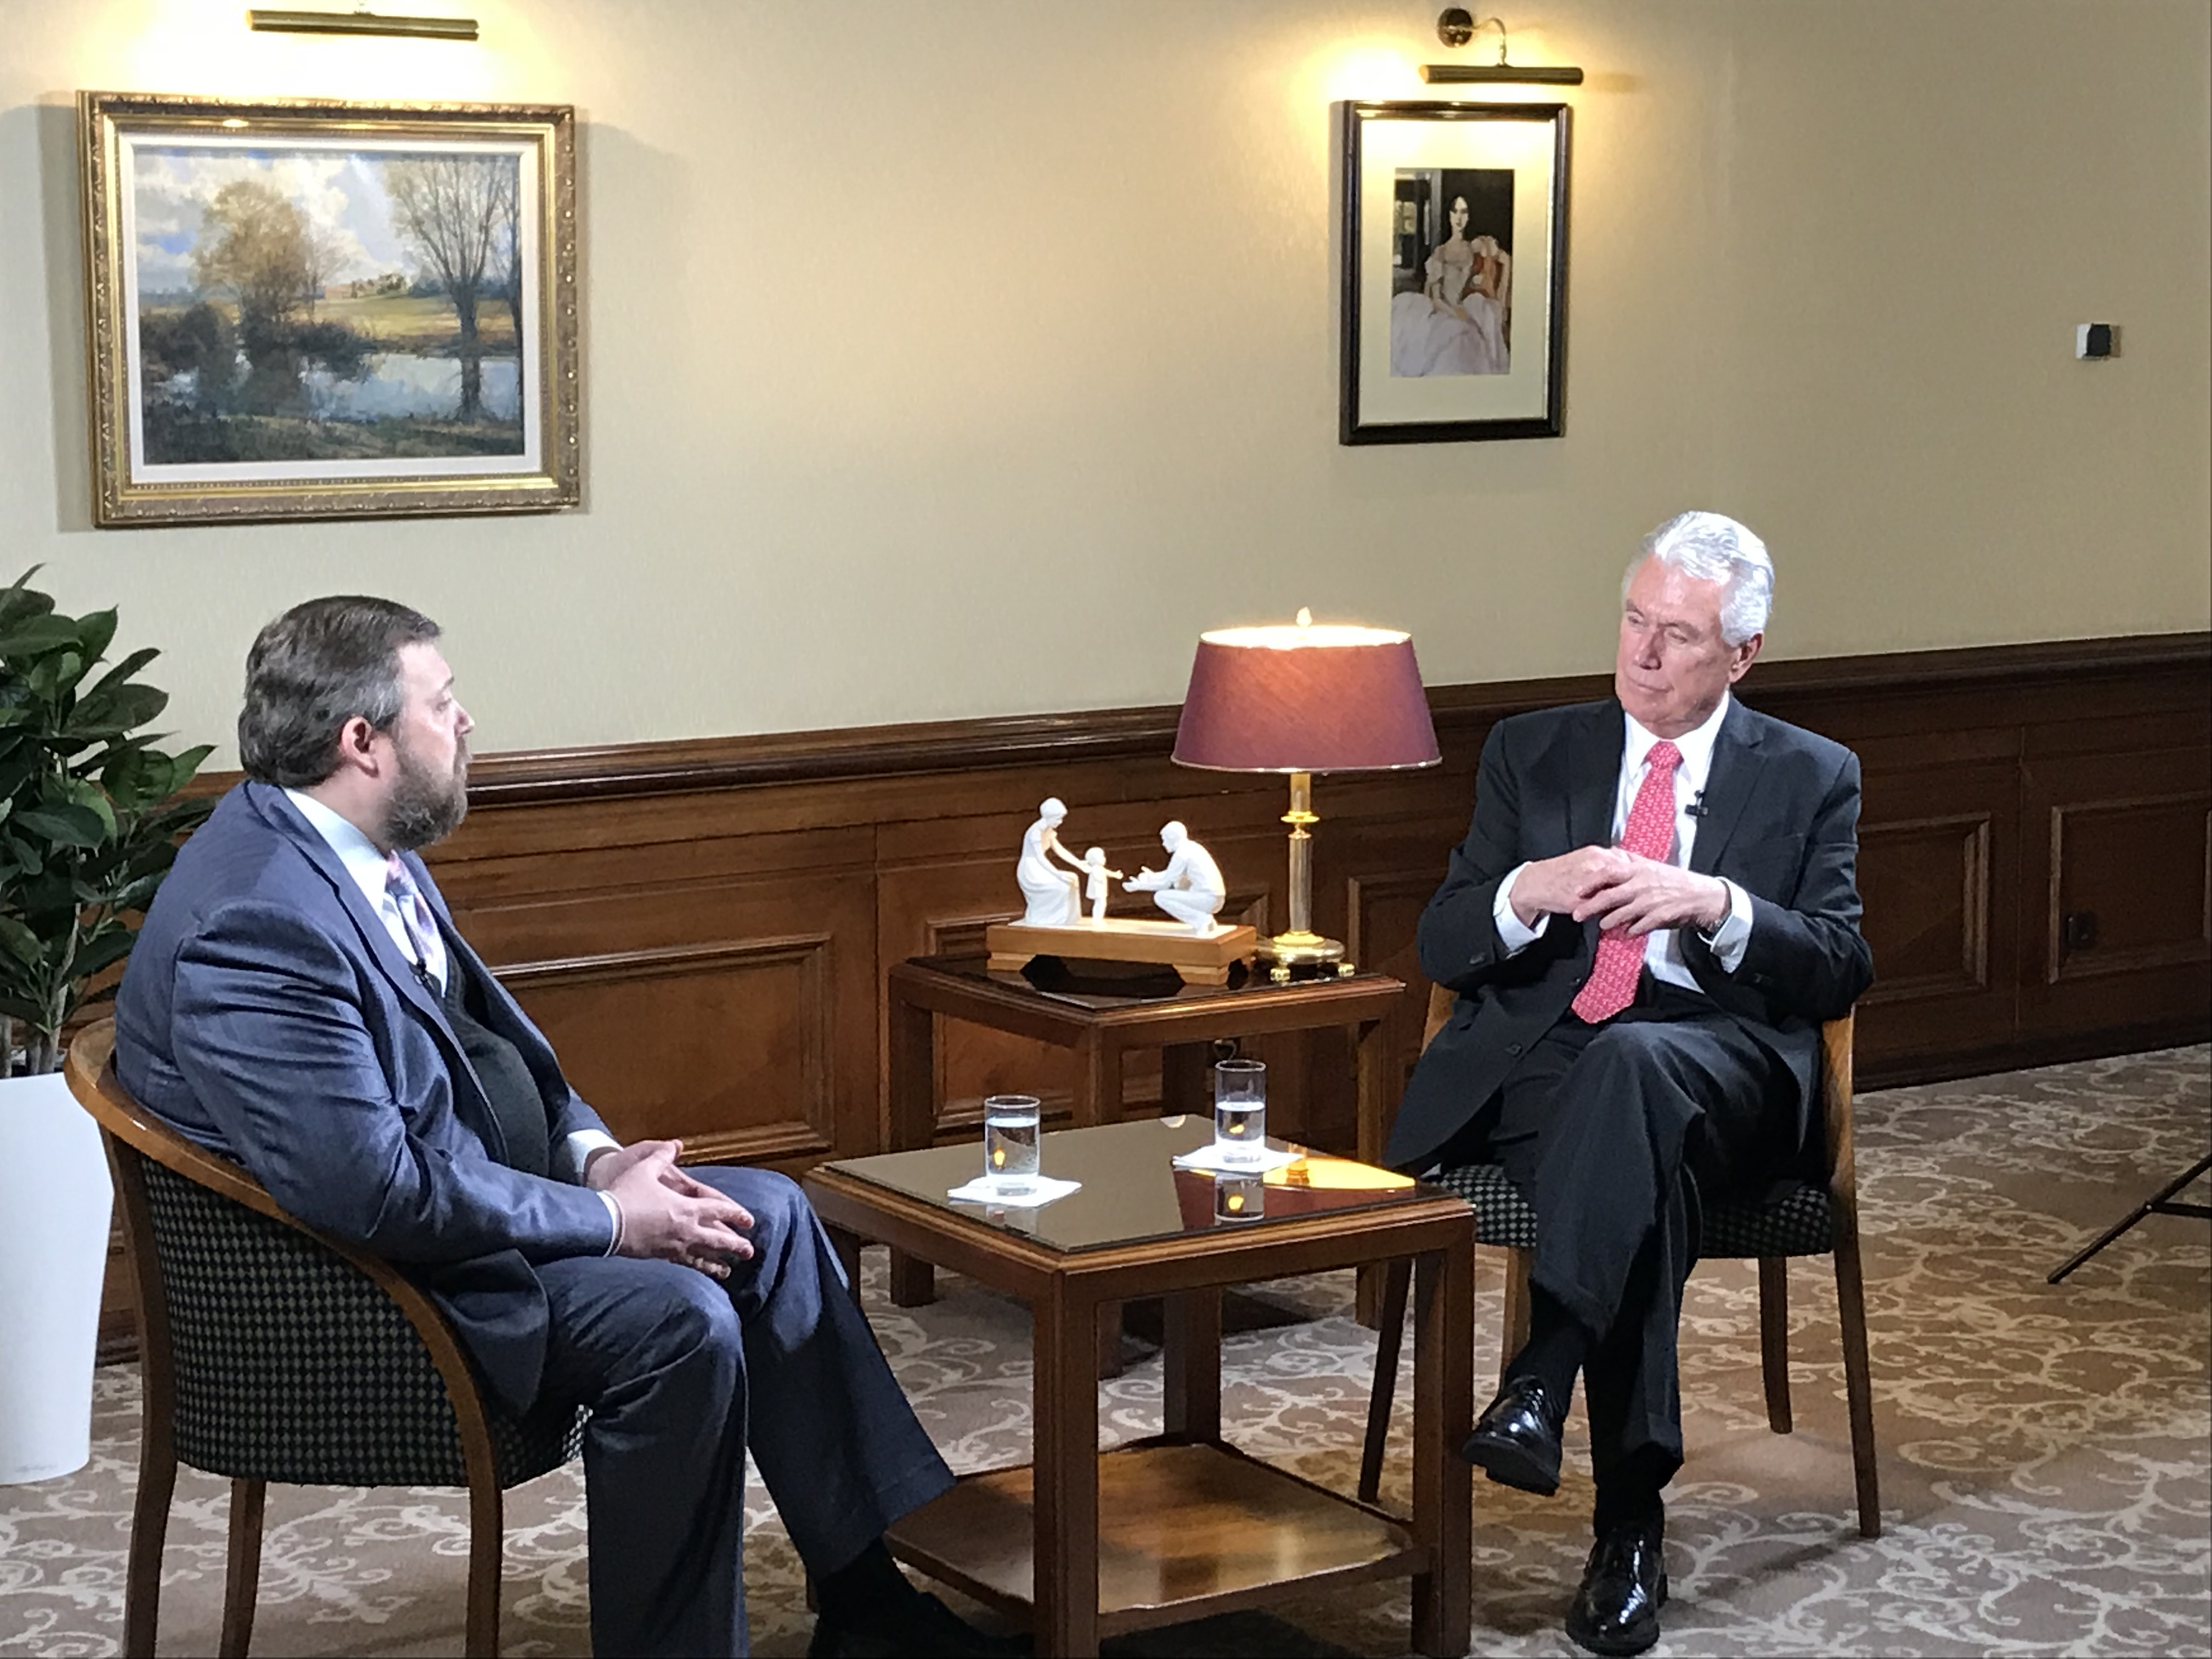 After the April 22, 2018, stake conference session in Moscow, Russia, Elder Dieter F. Uchtdorf is interviewed by Sergey Antonenko, a well-known journalist, historian and publicist. Also interviewed was Elder Alexey V. Samaykin, an Area Seventy in Russia.